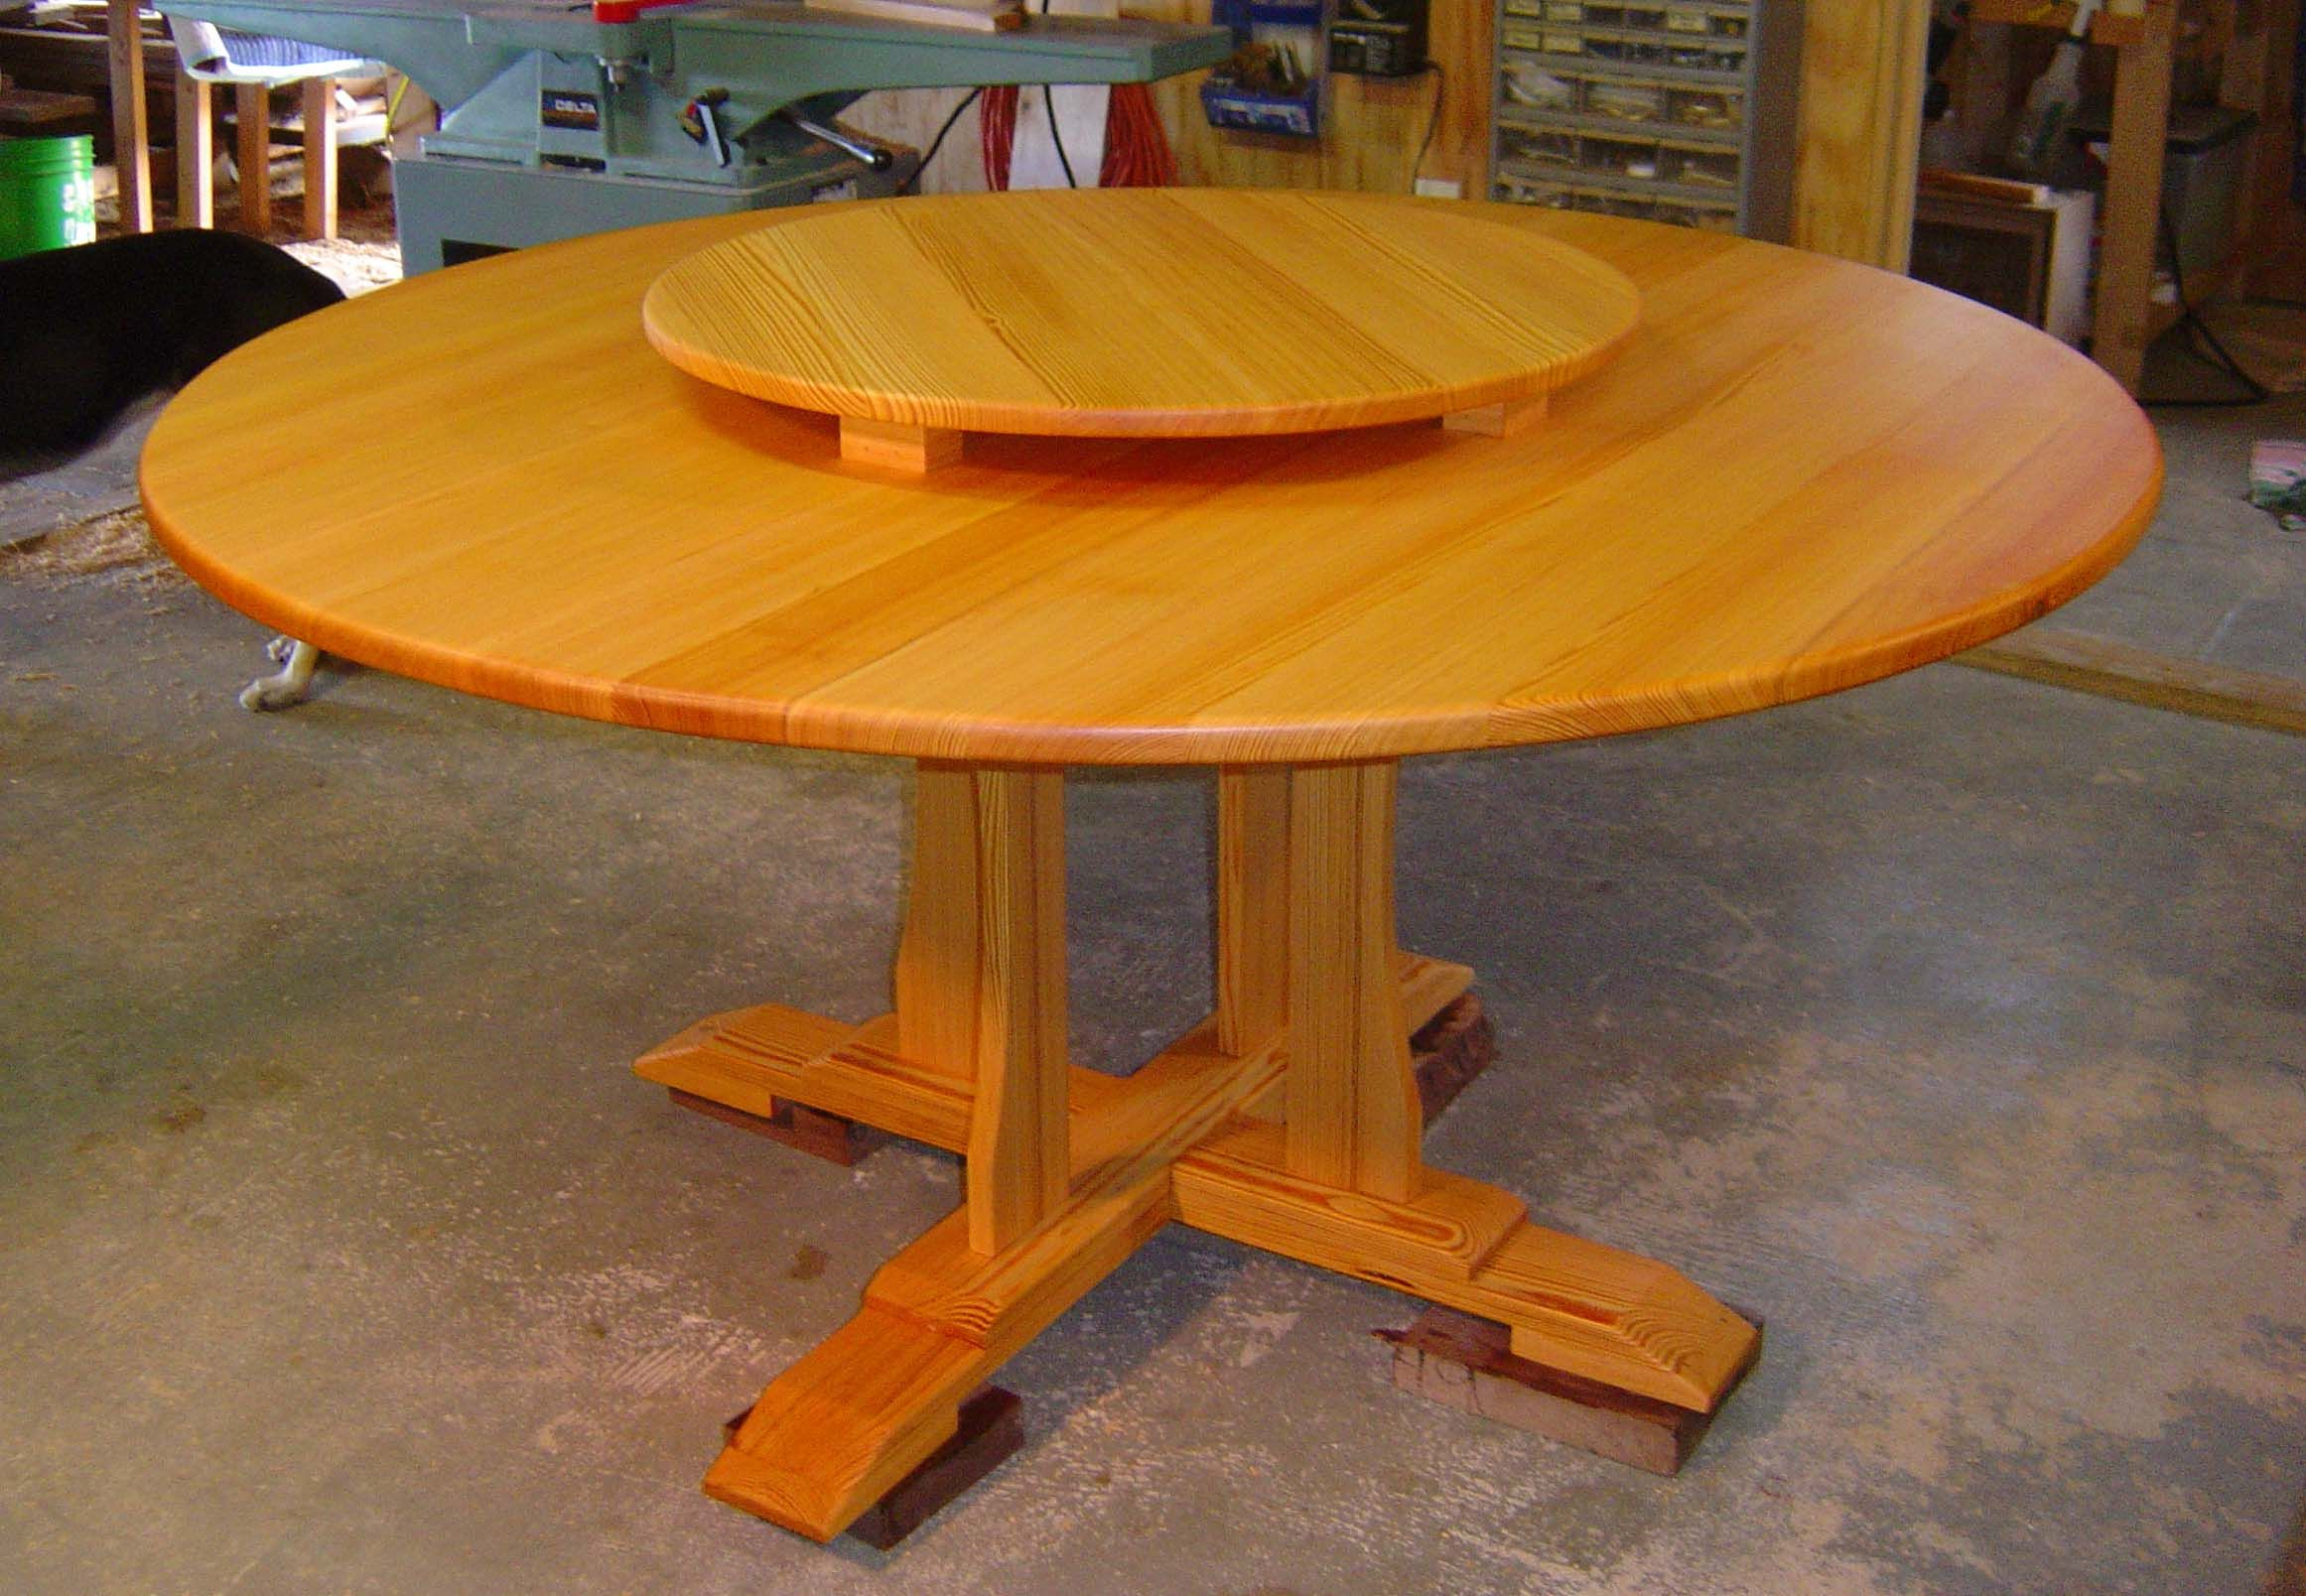 A Lazy Susan Table, I Have Always Wanted One Of These!